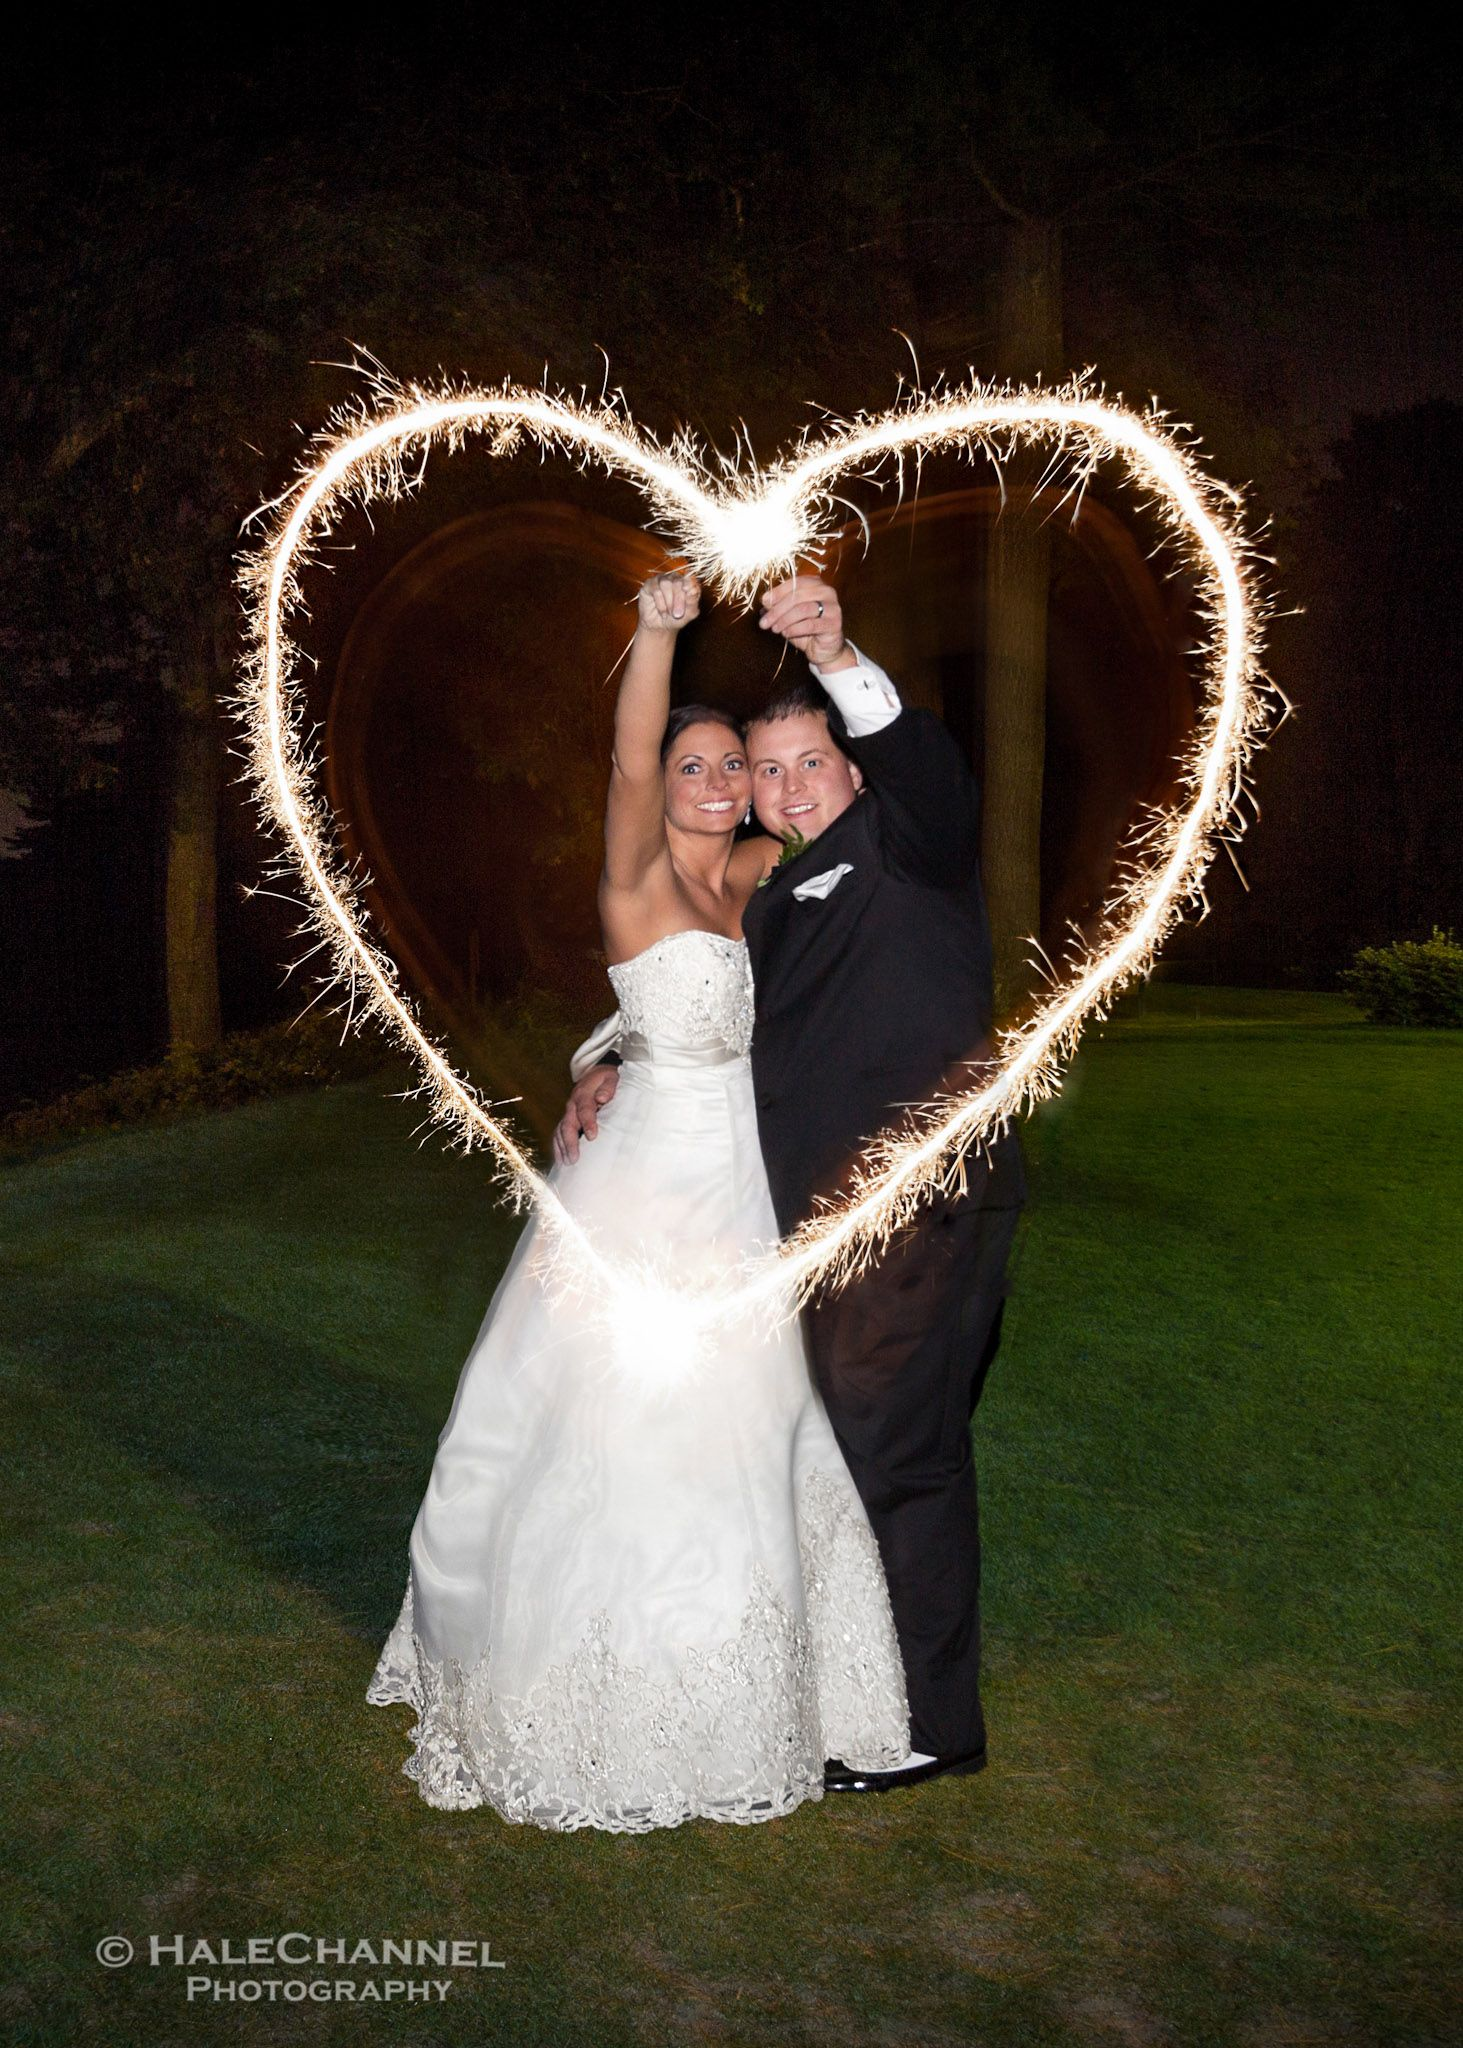 This Sparkler Writing Article Shows You How 12 Stunningly Unique Wedding Photos Were Made Using Ordinary Sparklers And Time Exposures